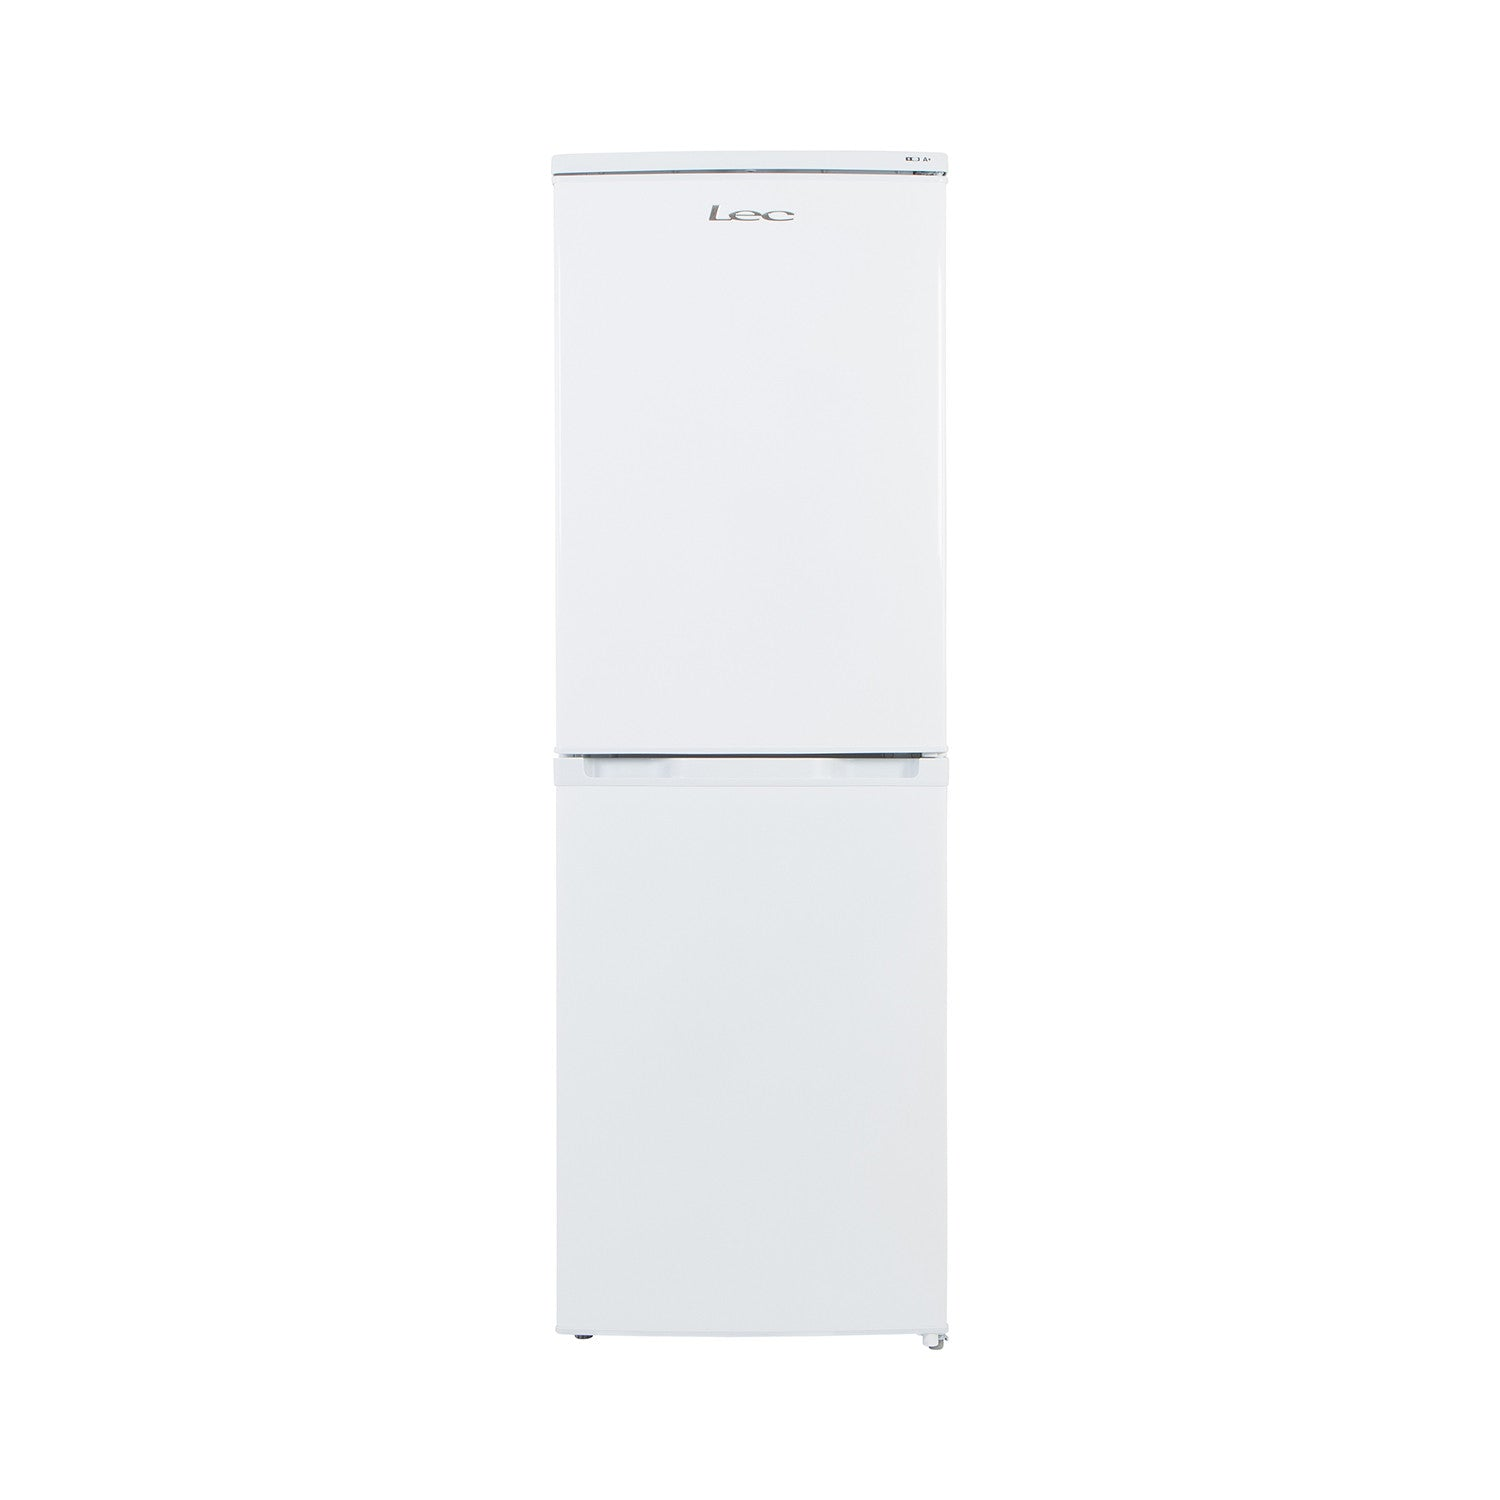 LEC TF50152W Large Fridge Freezer - Sold as an agent of Euronics Ltd